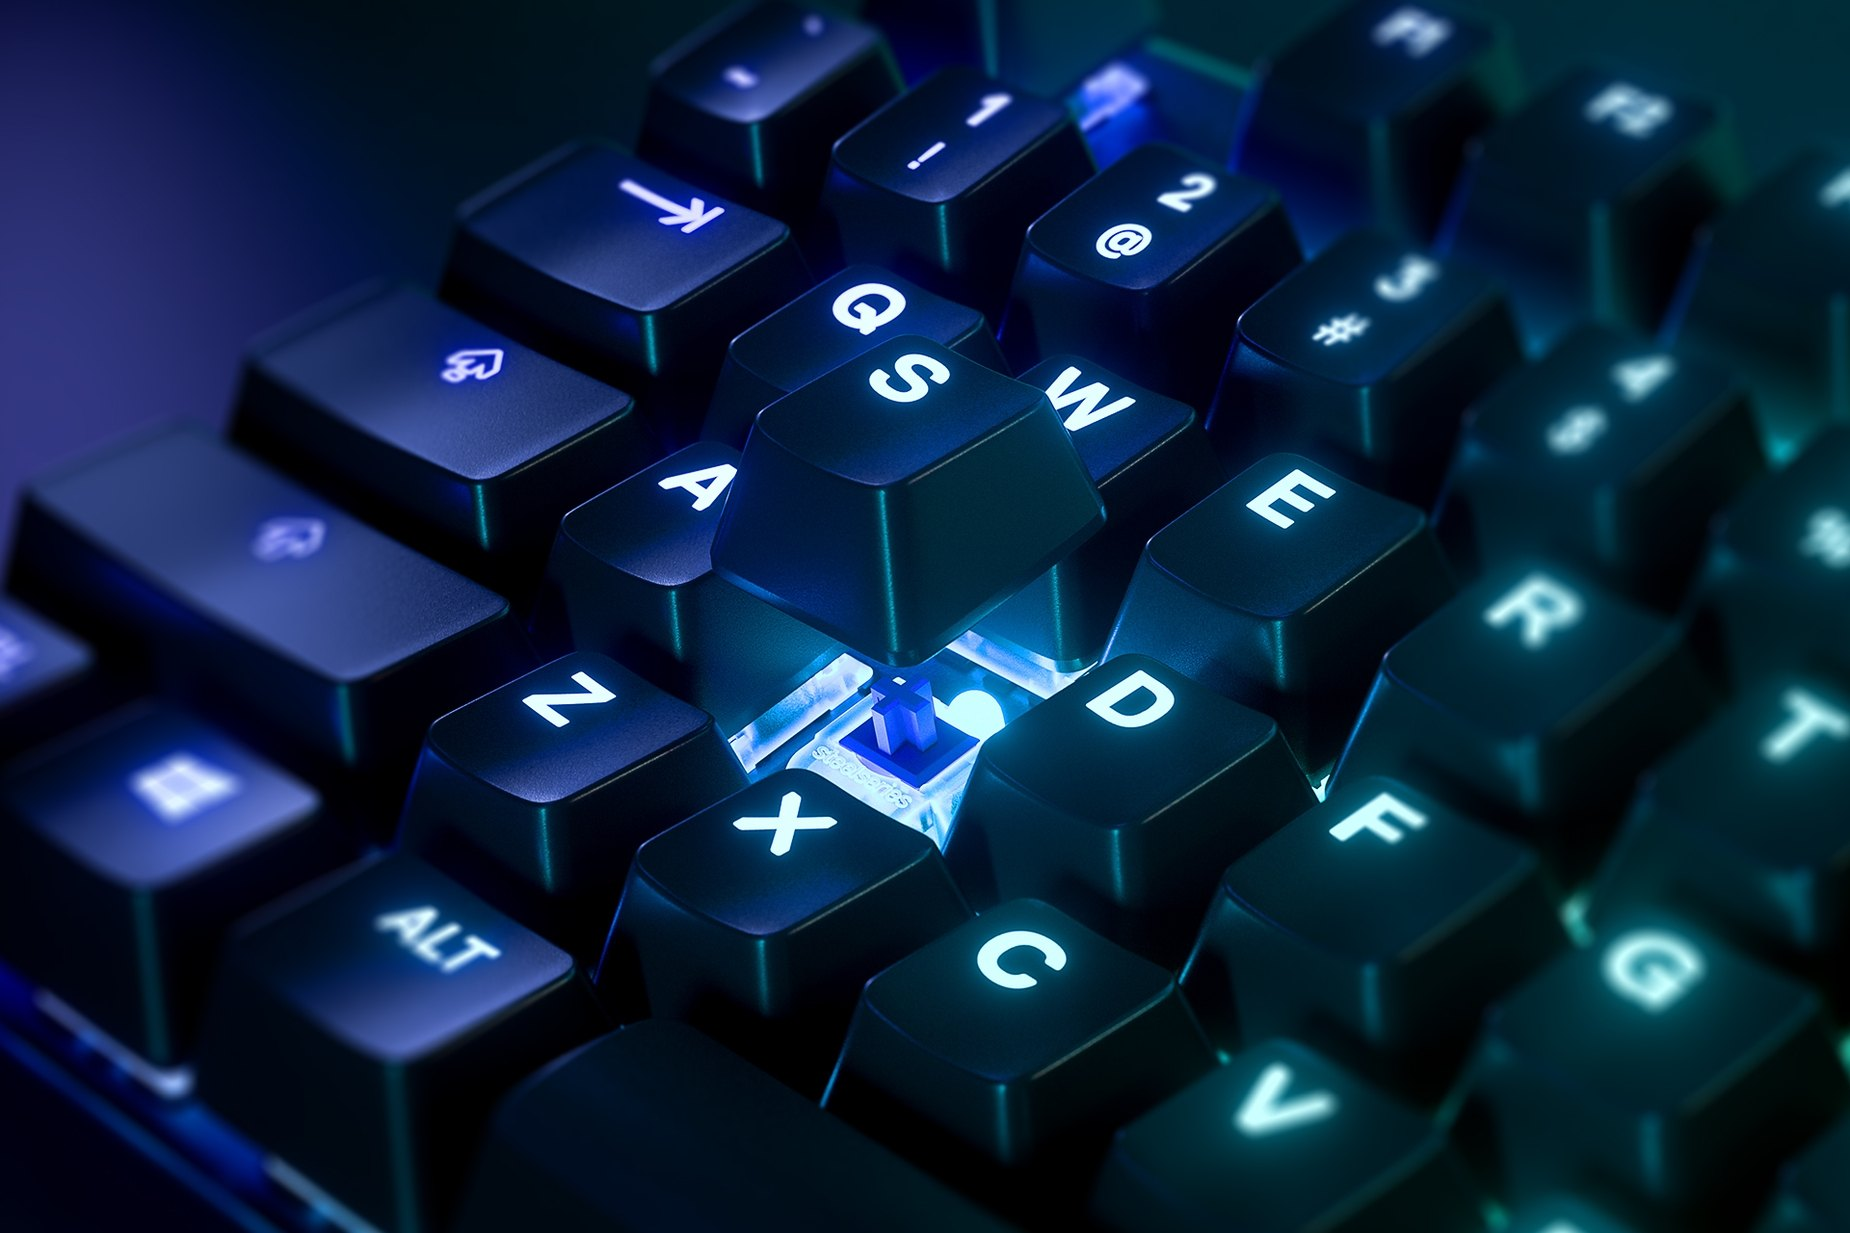 Zoomed in view of a single key on the UK English-Apex 7 (Blue Switch) gaming keyboard, the key is raised up to show the SteelSeries QX2 Mechanical RGB Switch underneath